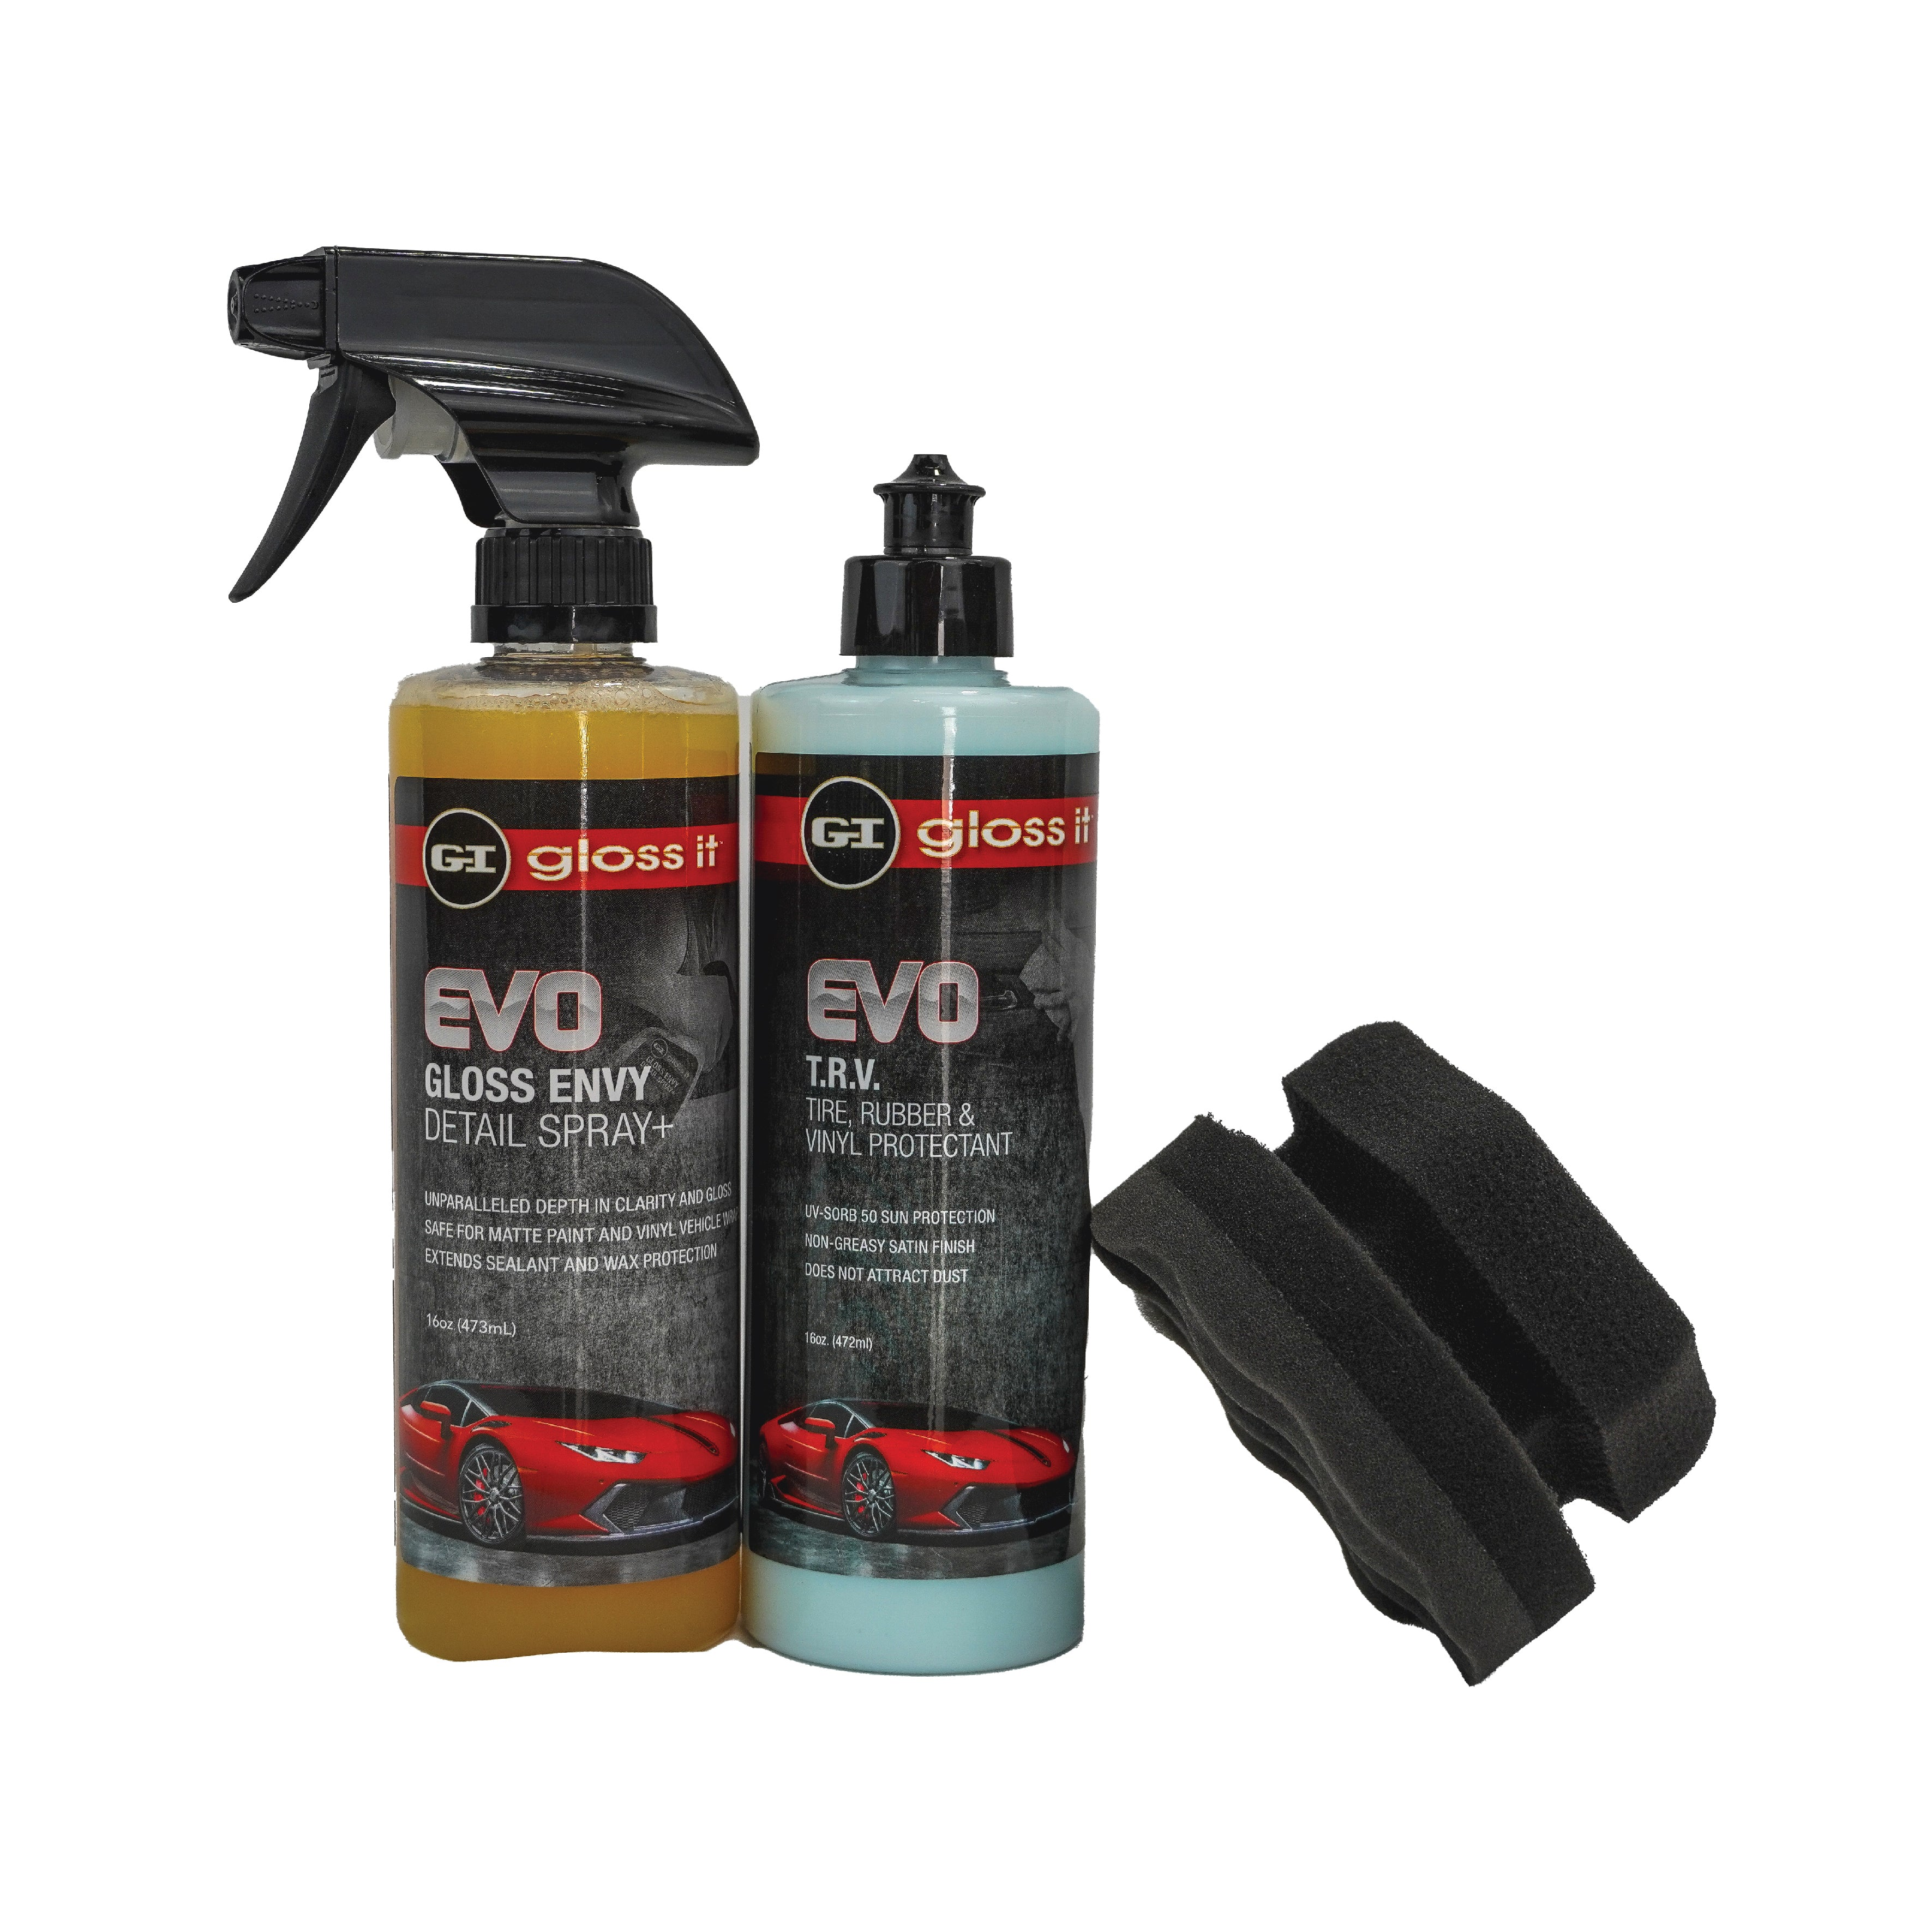 Gloss Envy Detail Spray + FREE T.R.V & Hexi Applicator